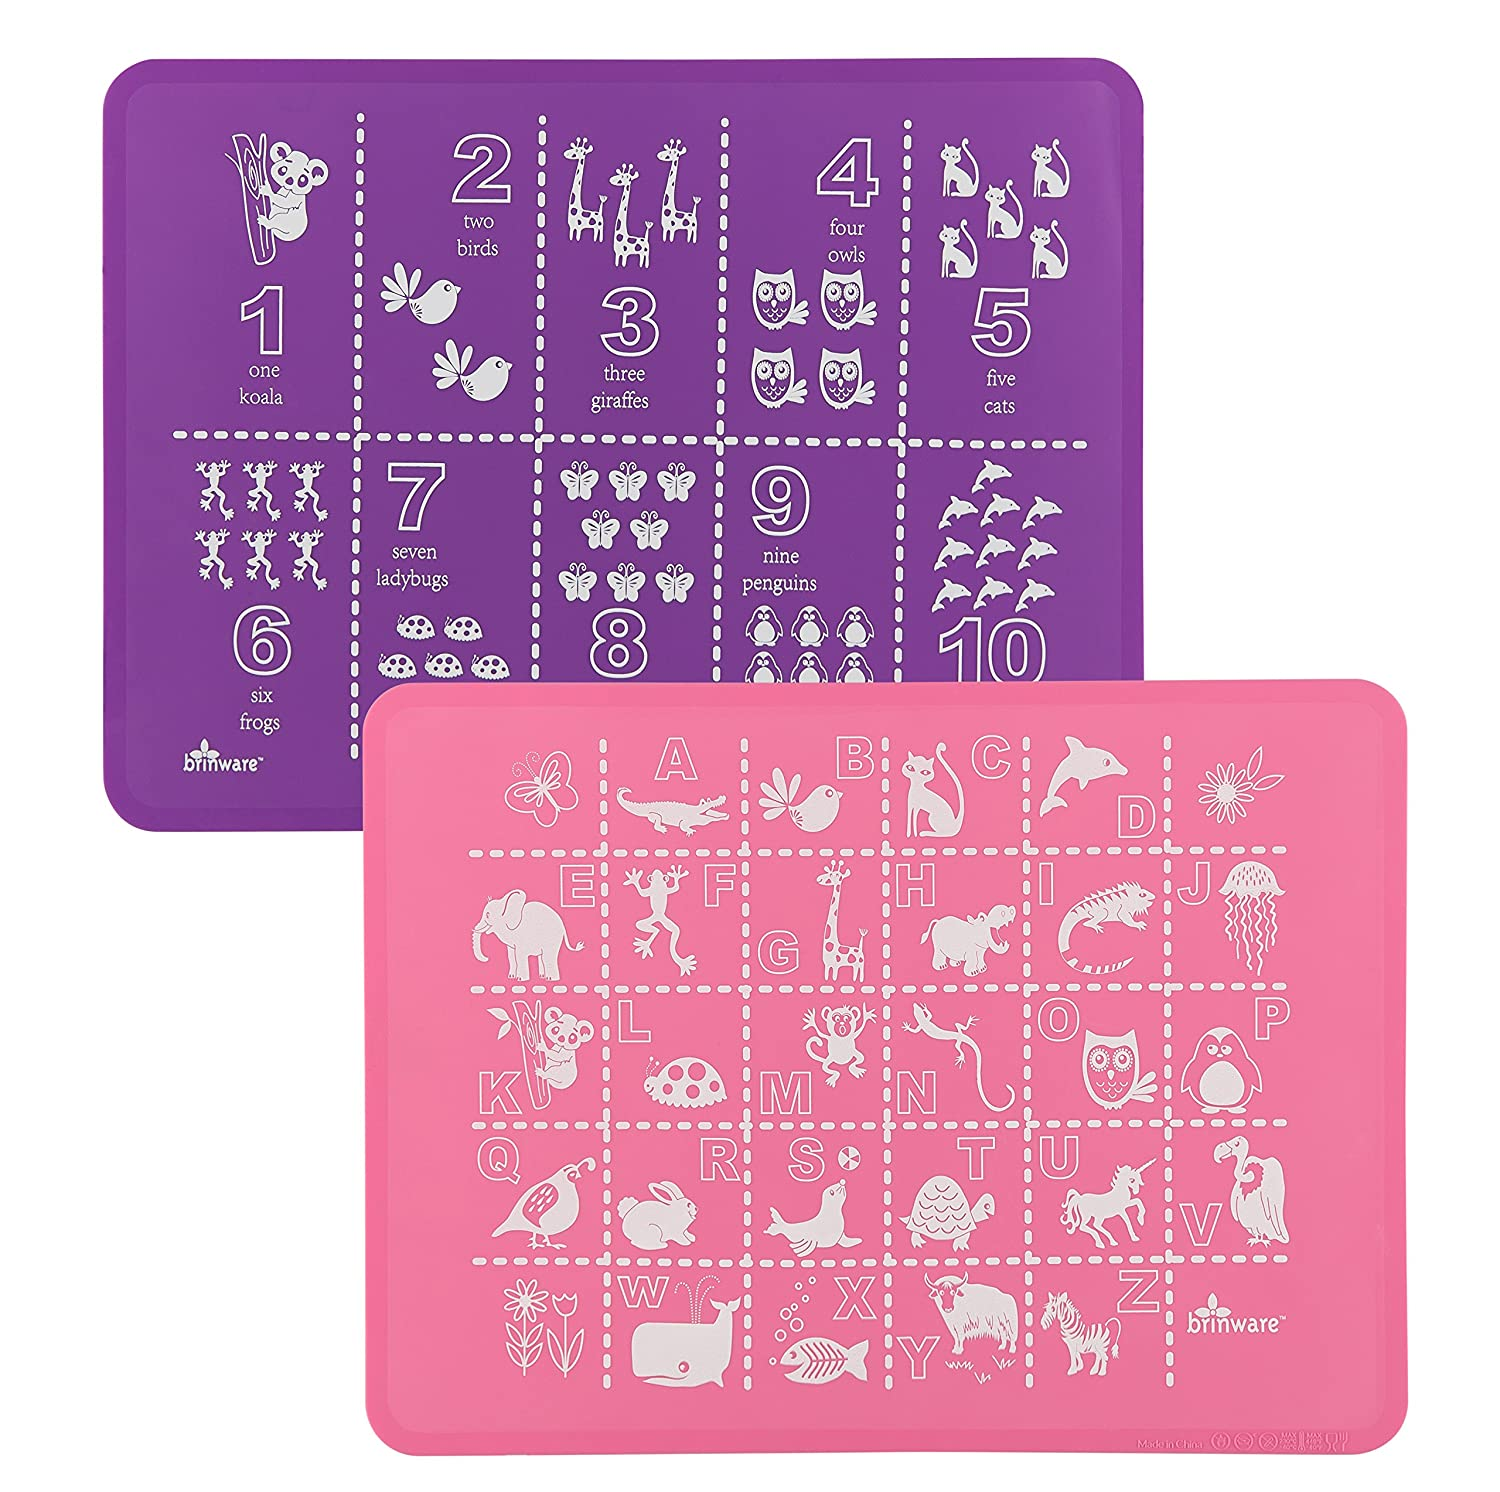 Brinware Placemat Set 2 Pack - ABC 123 Pink/Purple BRINPMPP